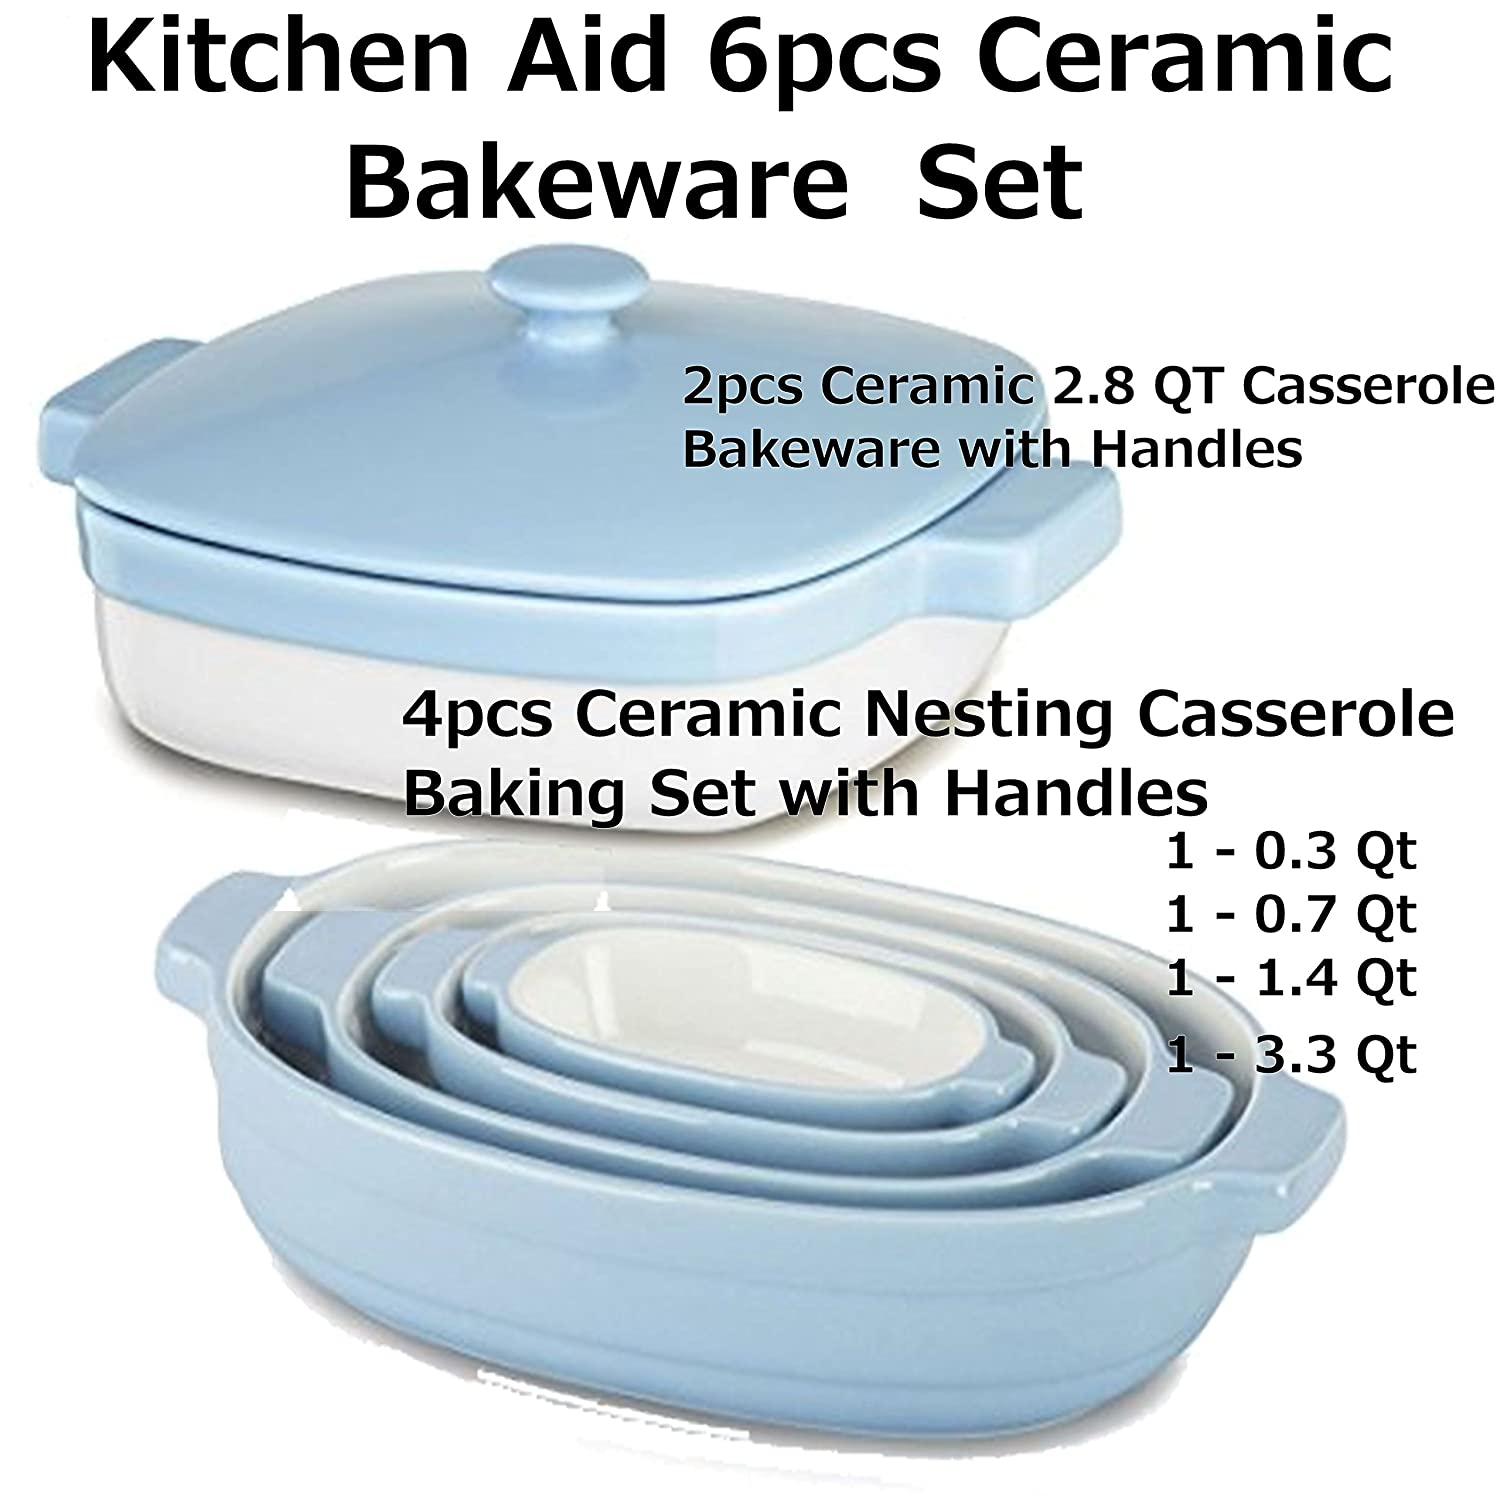 KitchenAid 4pc Ceramic Nesting Casserole Dishes Baking Set Cooking Pans Handles & Streamline Ceramic 2PCS 2.8-Quart Casserole Bakeware BUNDLE Total 6PCS KitchenAids